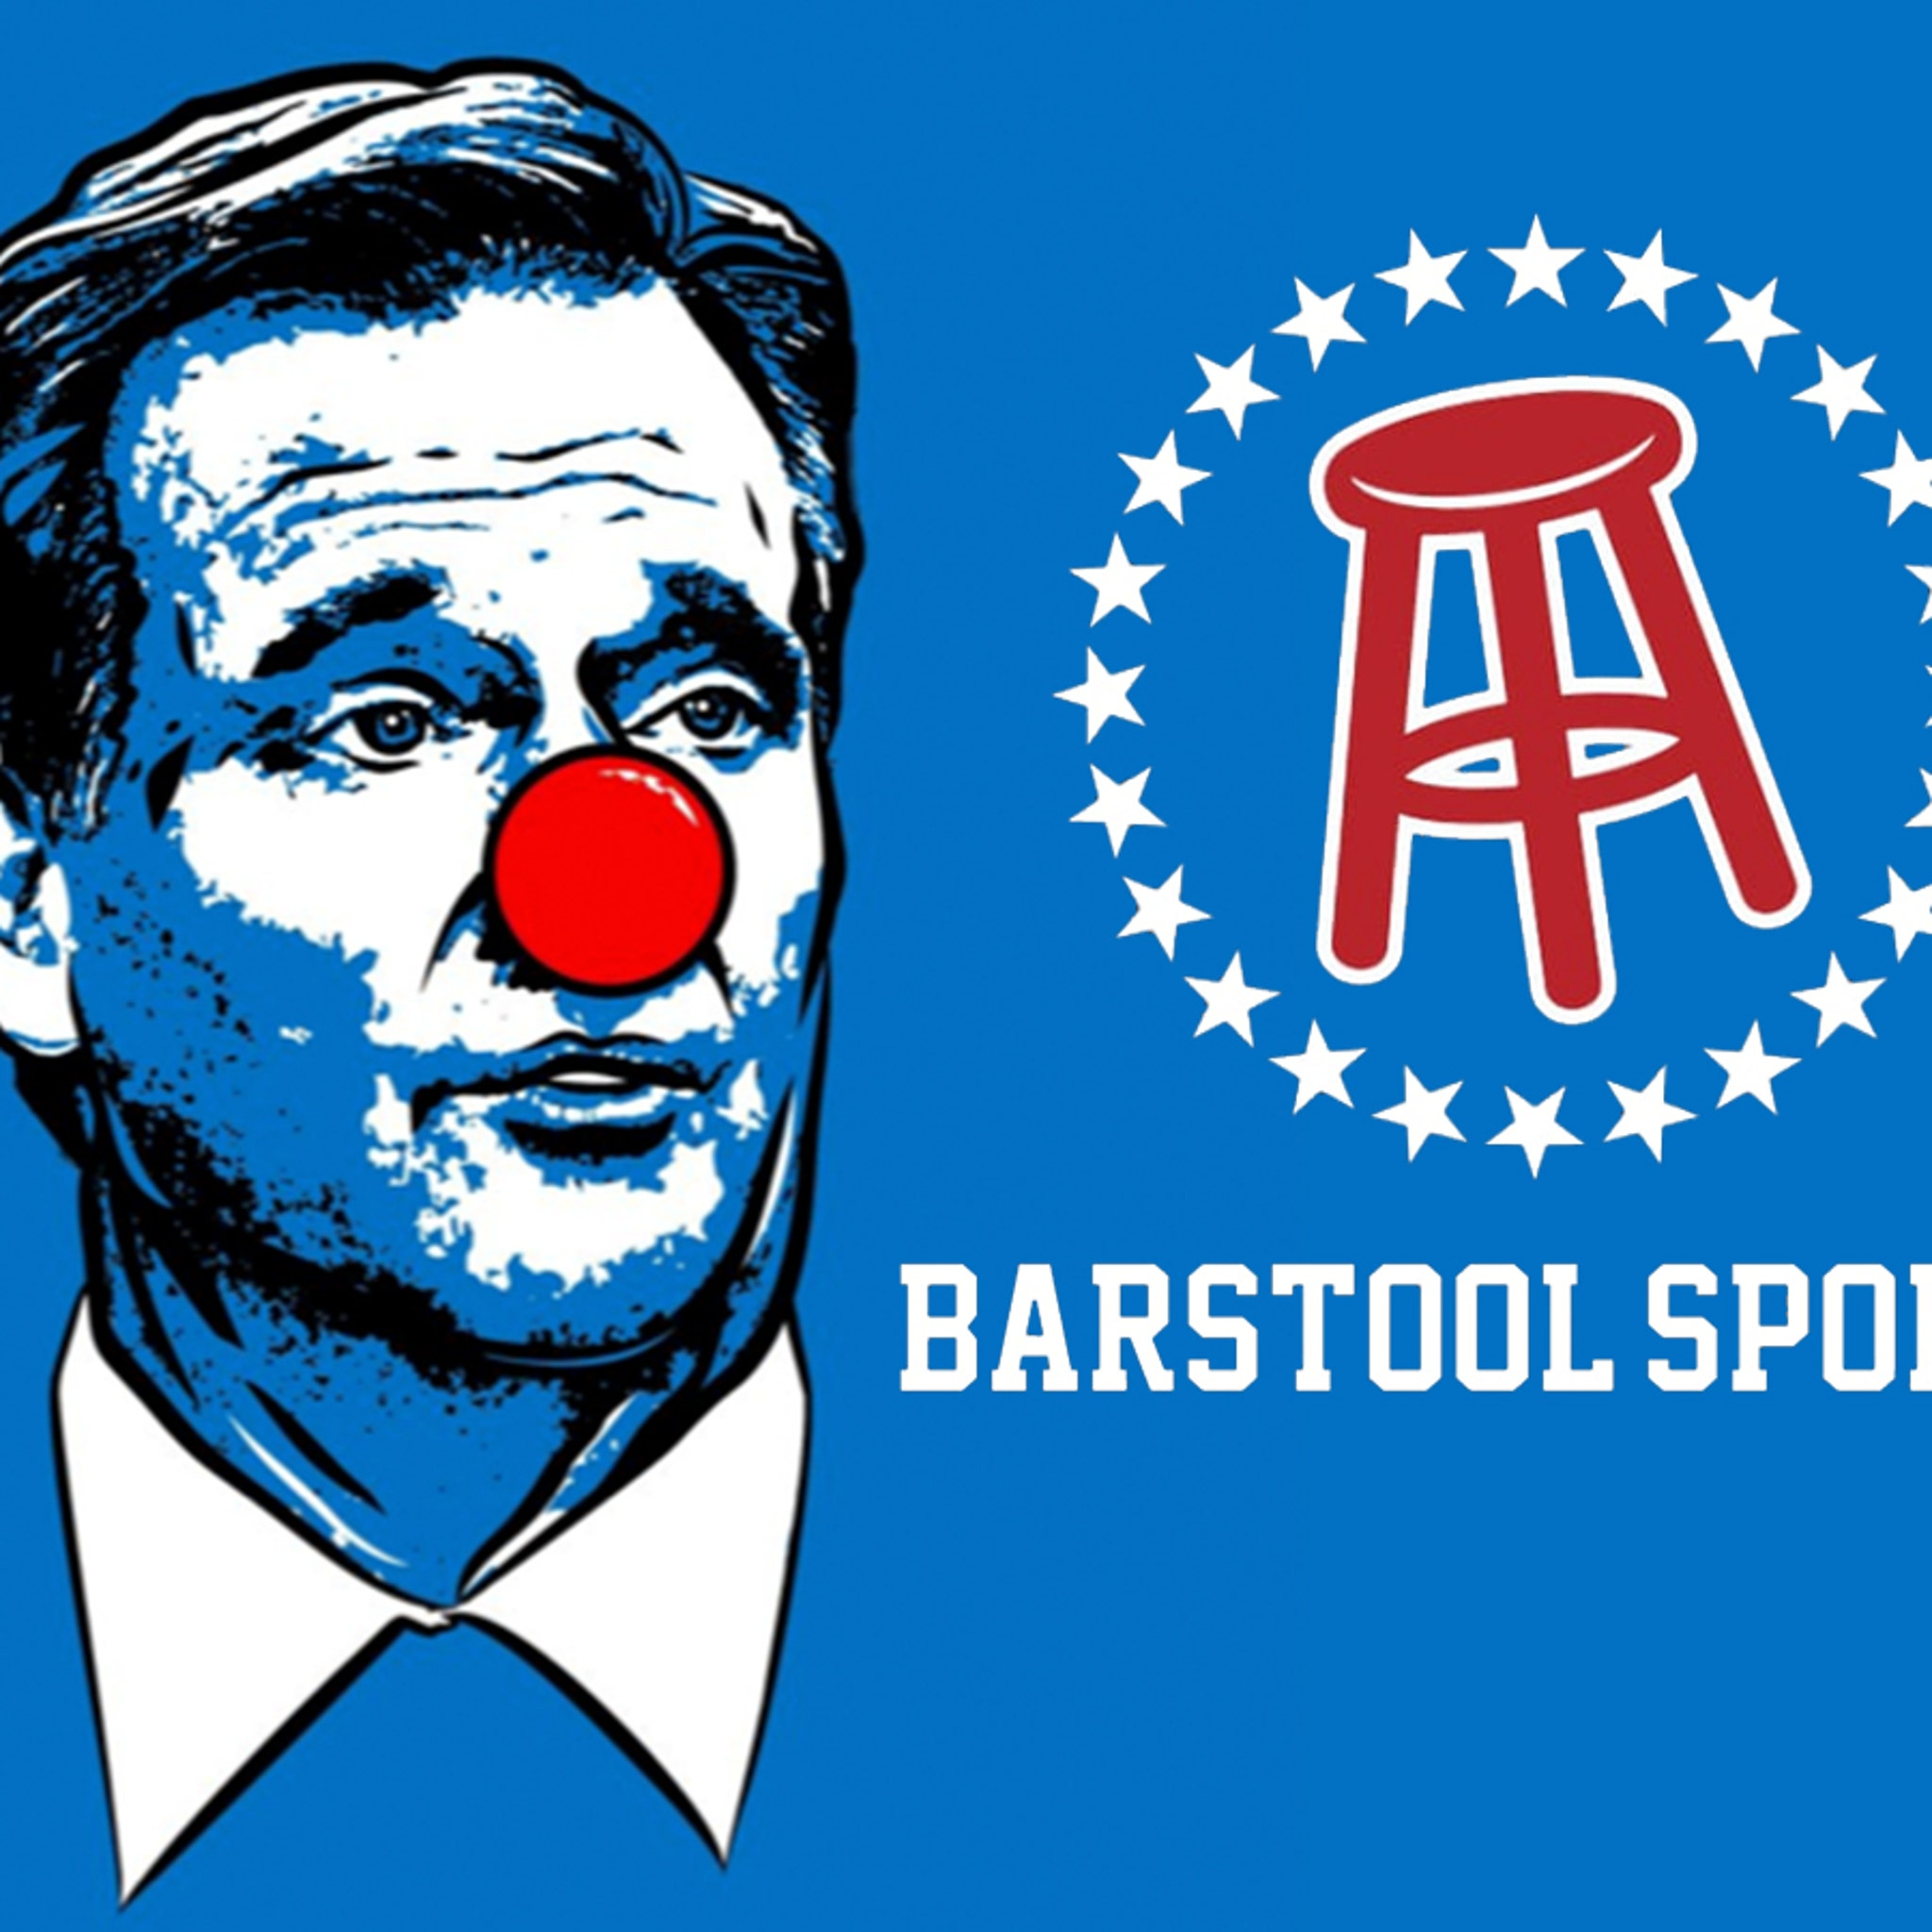 8ea399a3f3a Barstool Sports Sued Over Famous Sad Roger Goodell Image